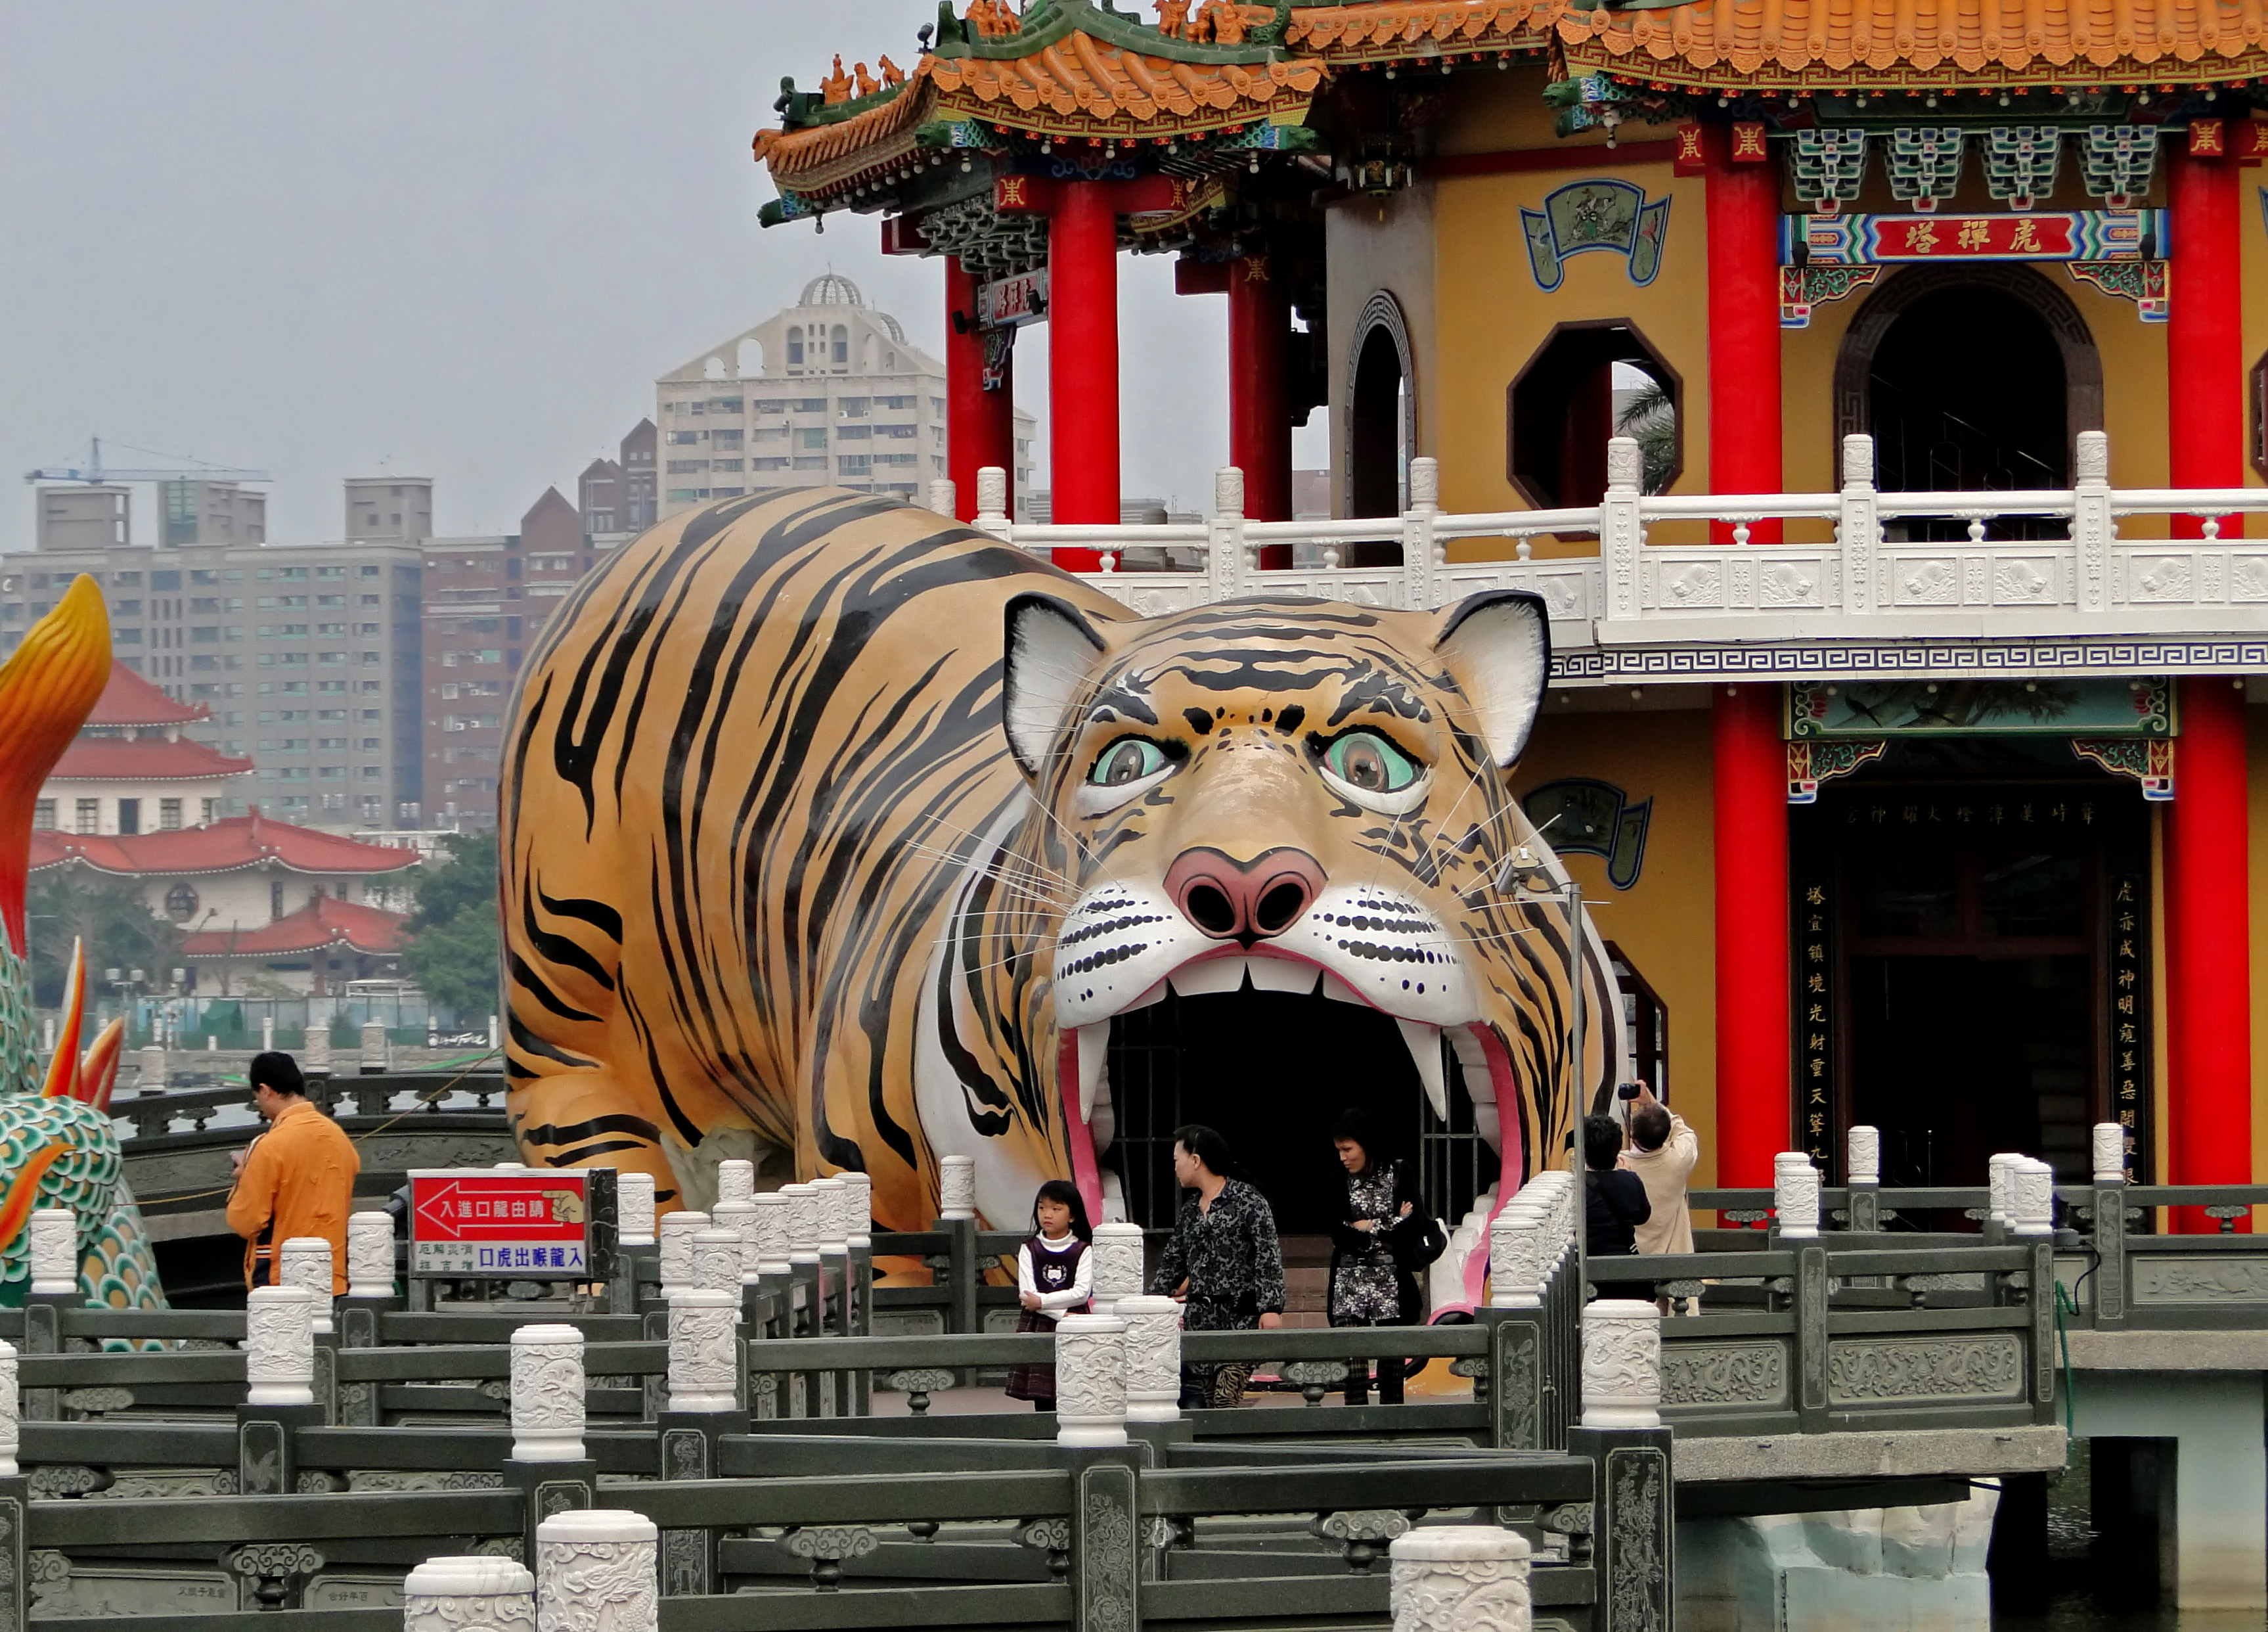 Tiger in Chinese culture - Wikipedia